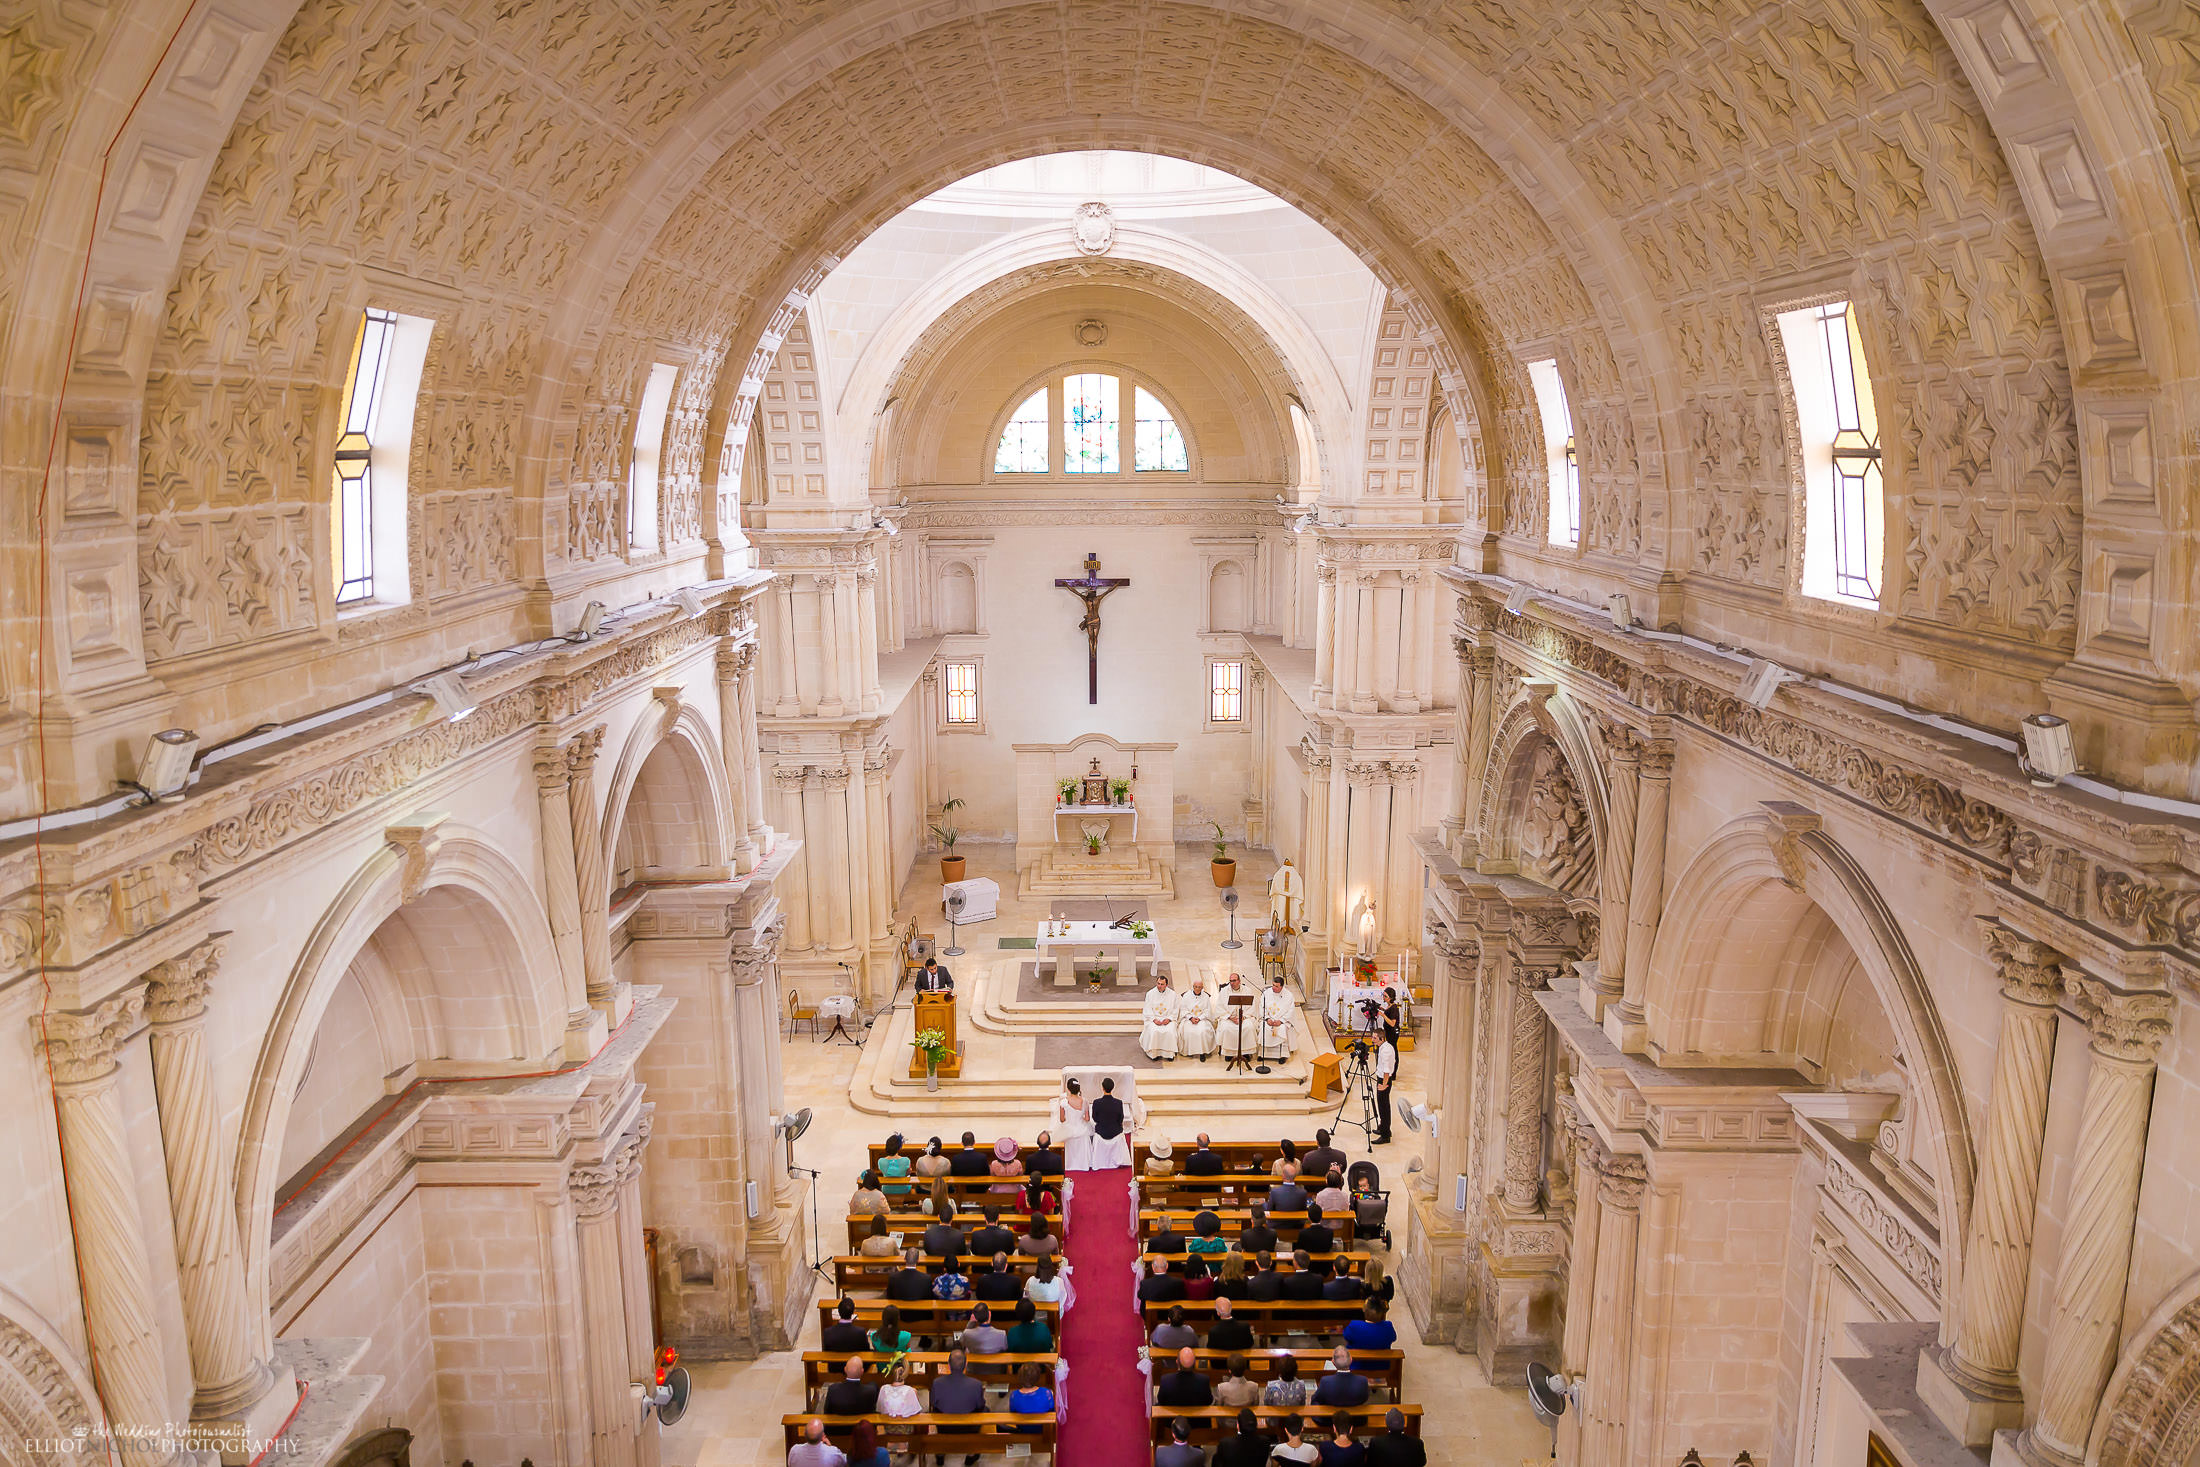 Overview of the church wedding ceremony. Photo by Elliot Nichol Photography.